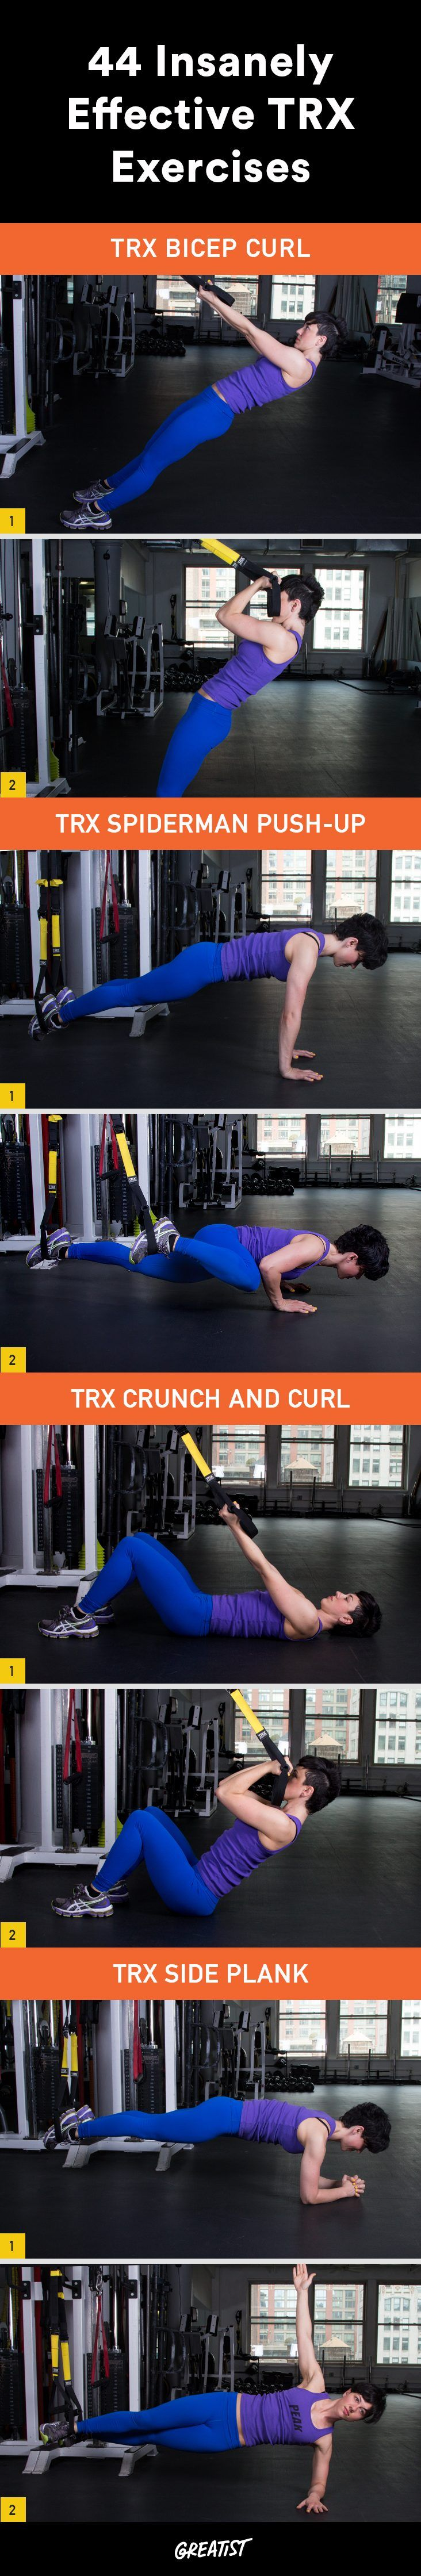 https://greatist.com/fitness/effective-TRX-exercises